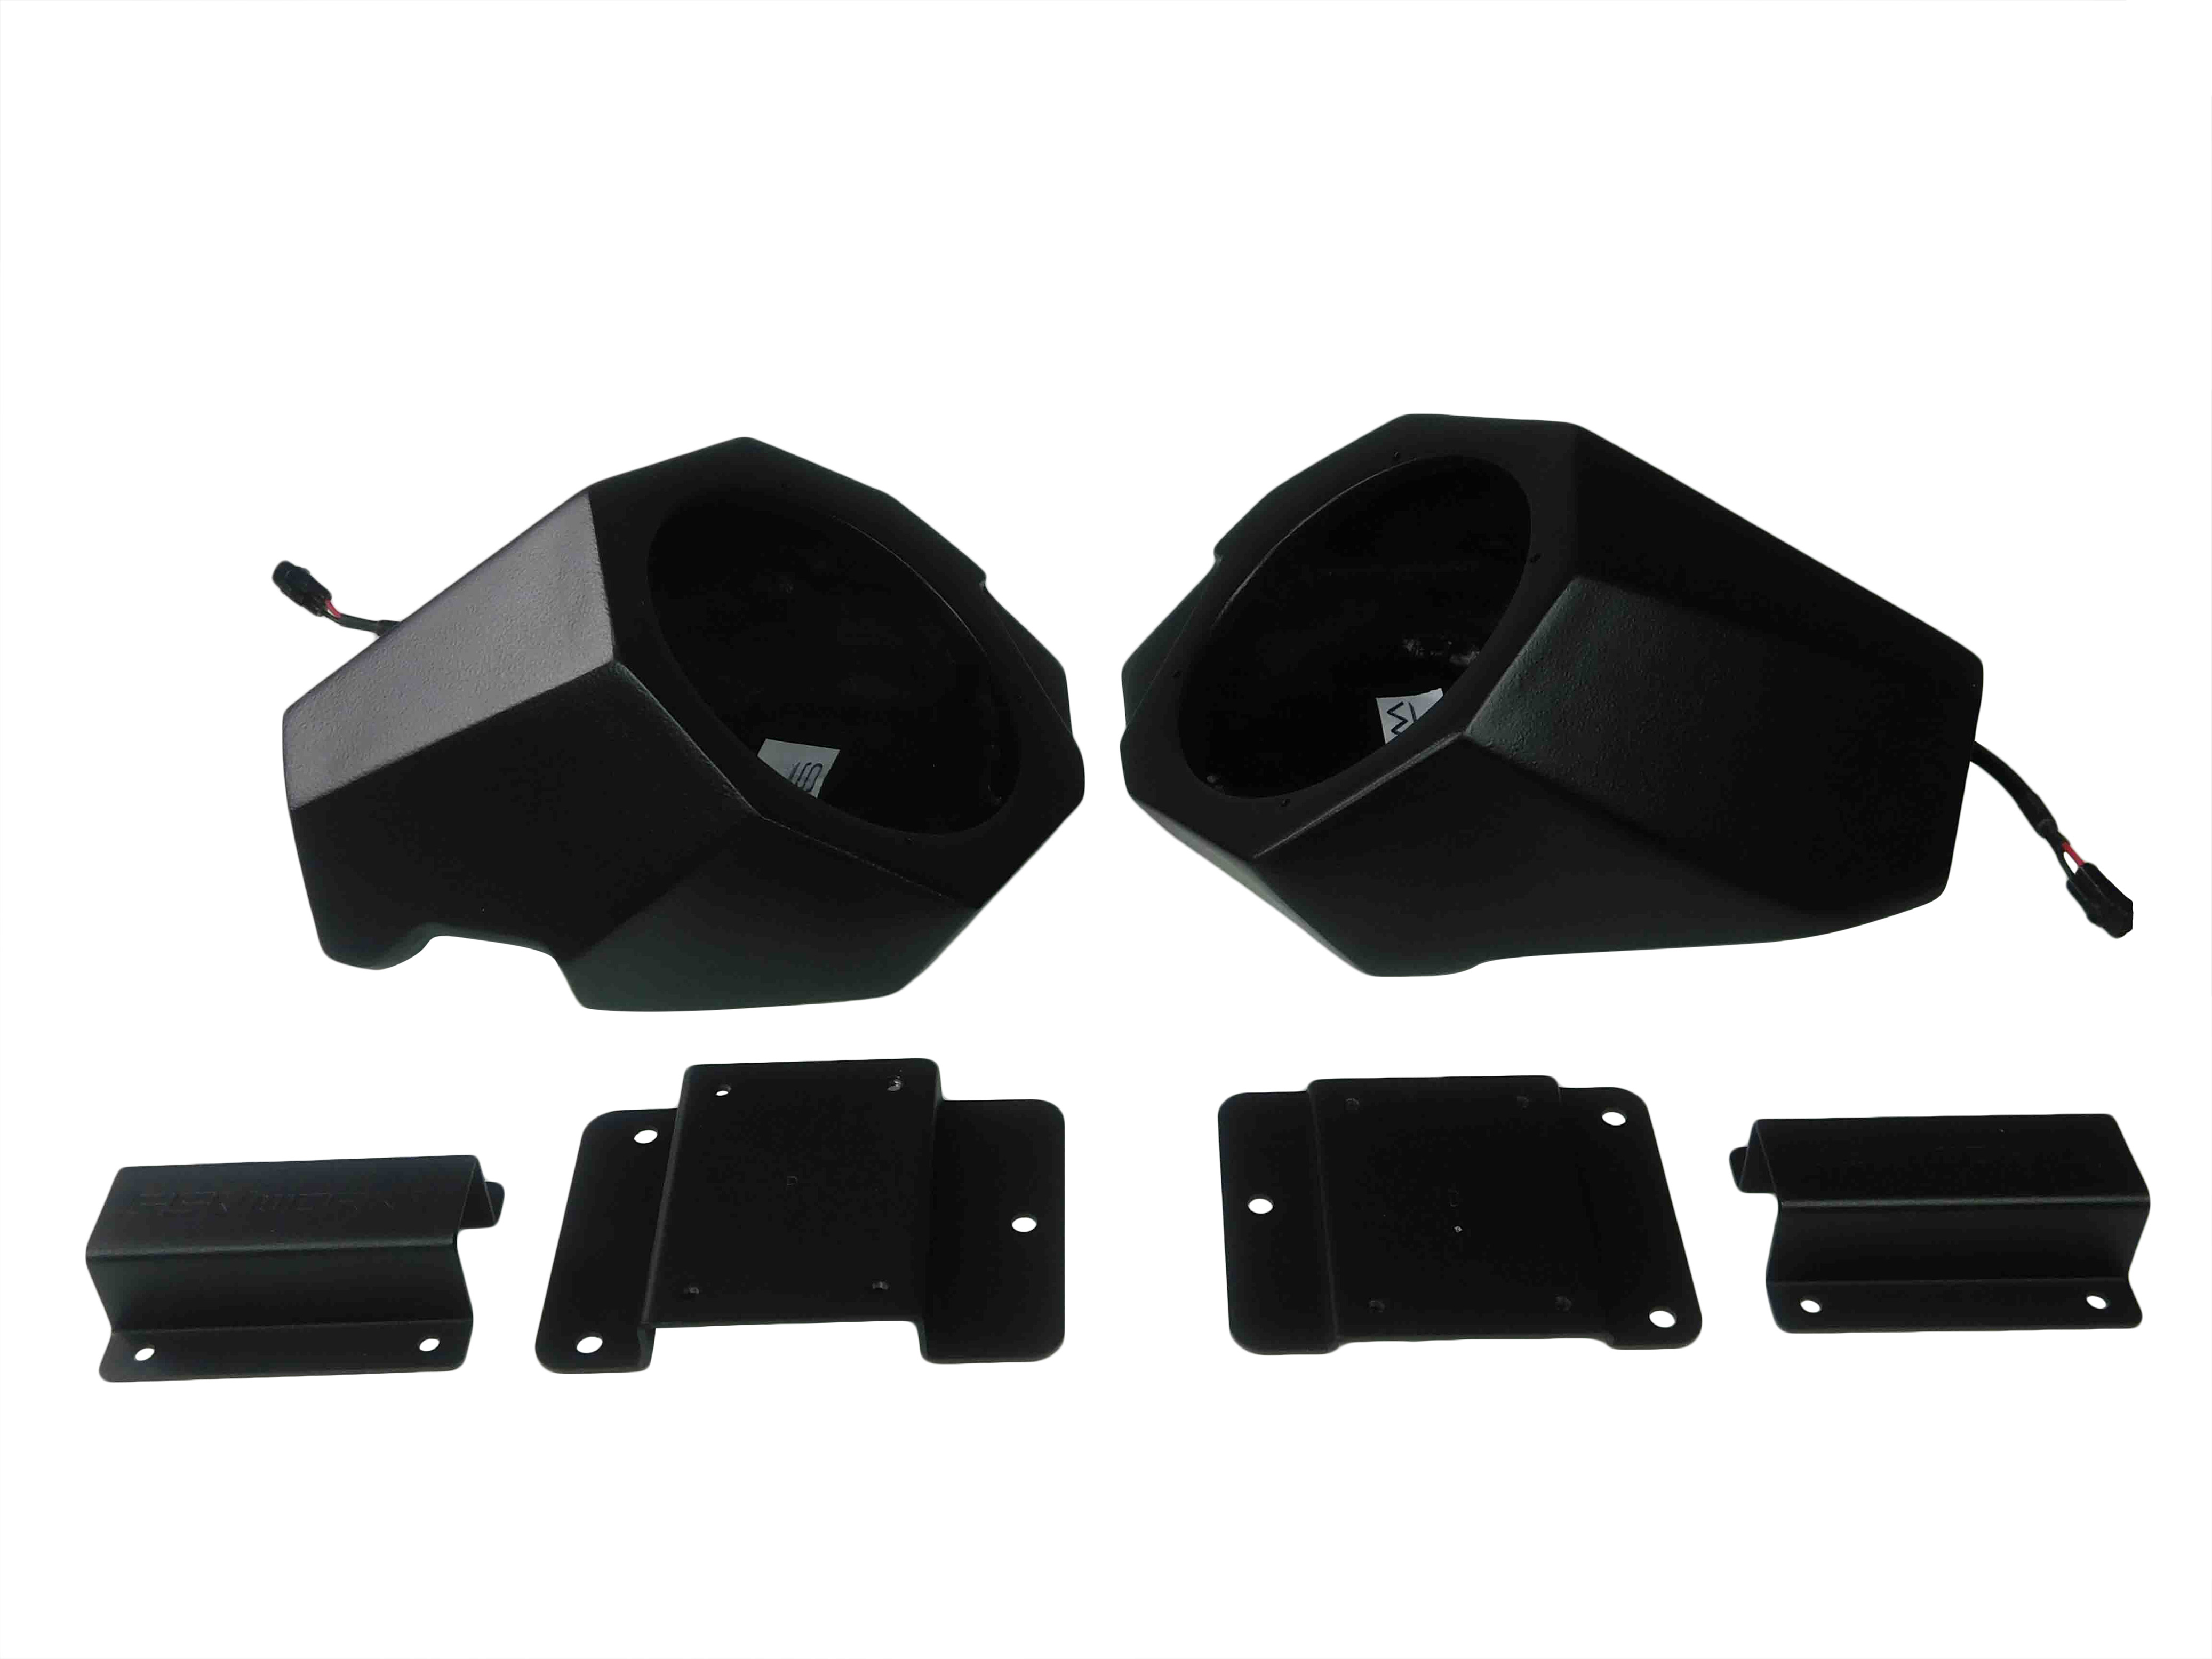 SSV-Works-X3-F65A-Front-Kick-Panel-Speaker-Unloaded-No-Speakers-image-1